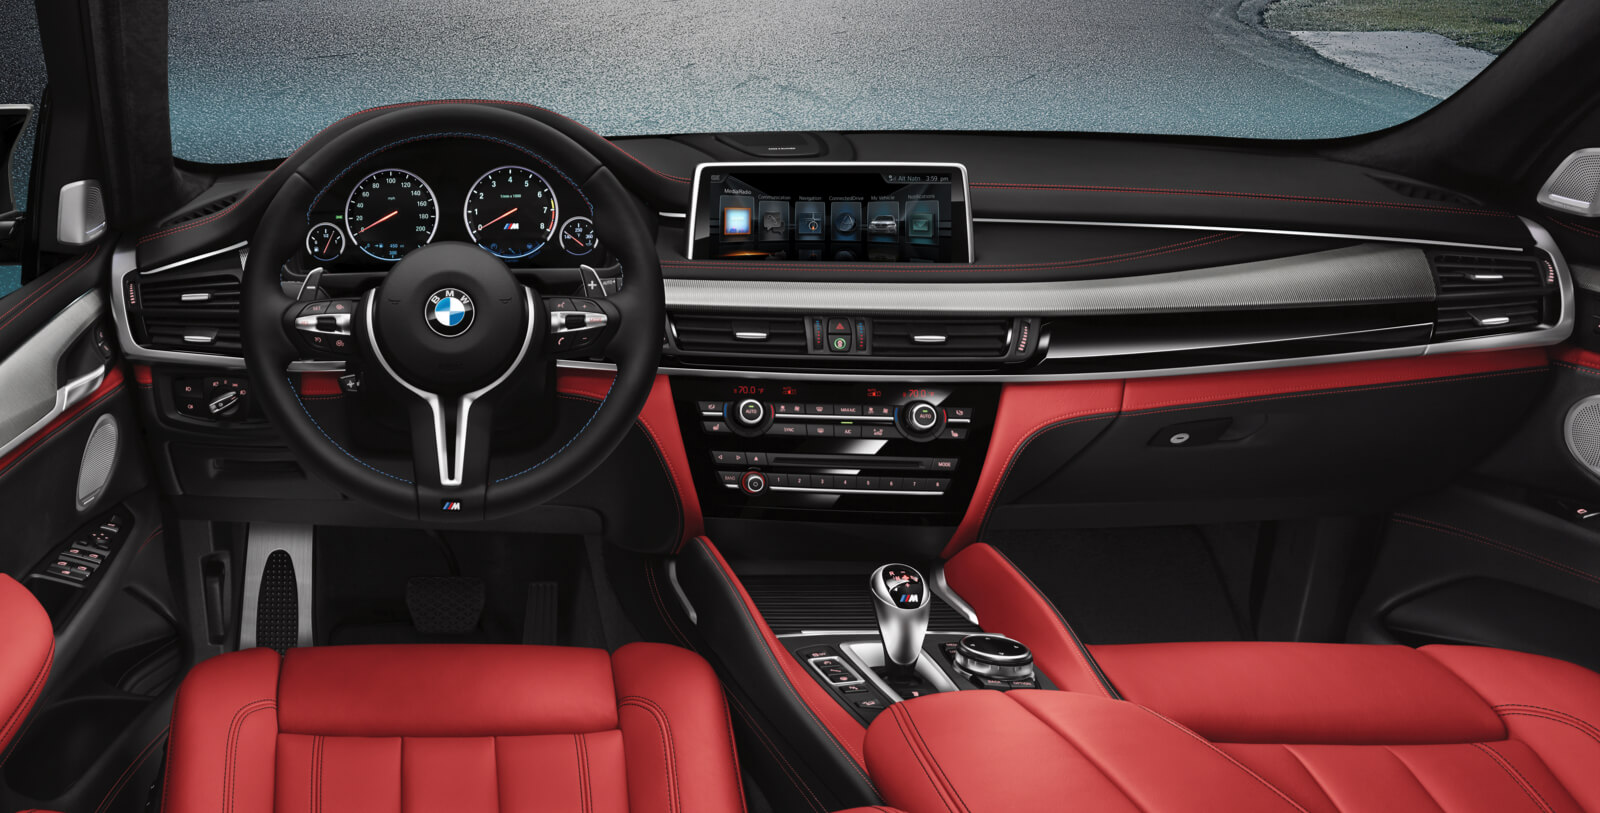 New BMW X5 M Interior Features